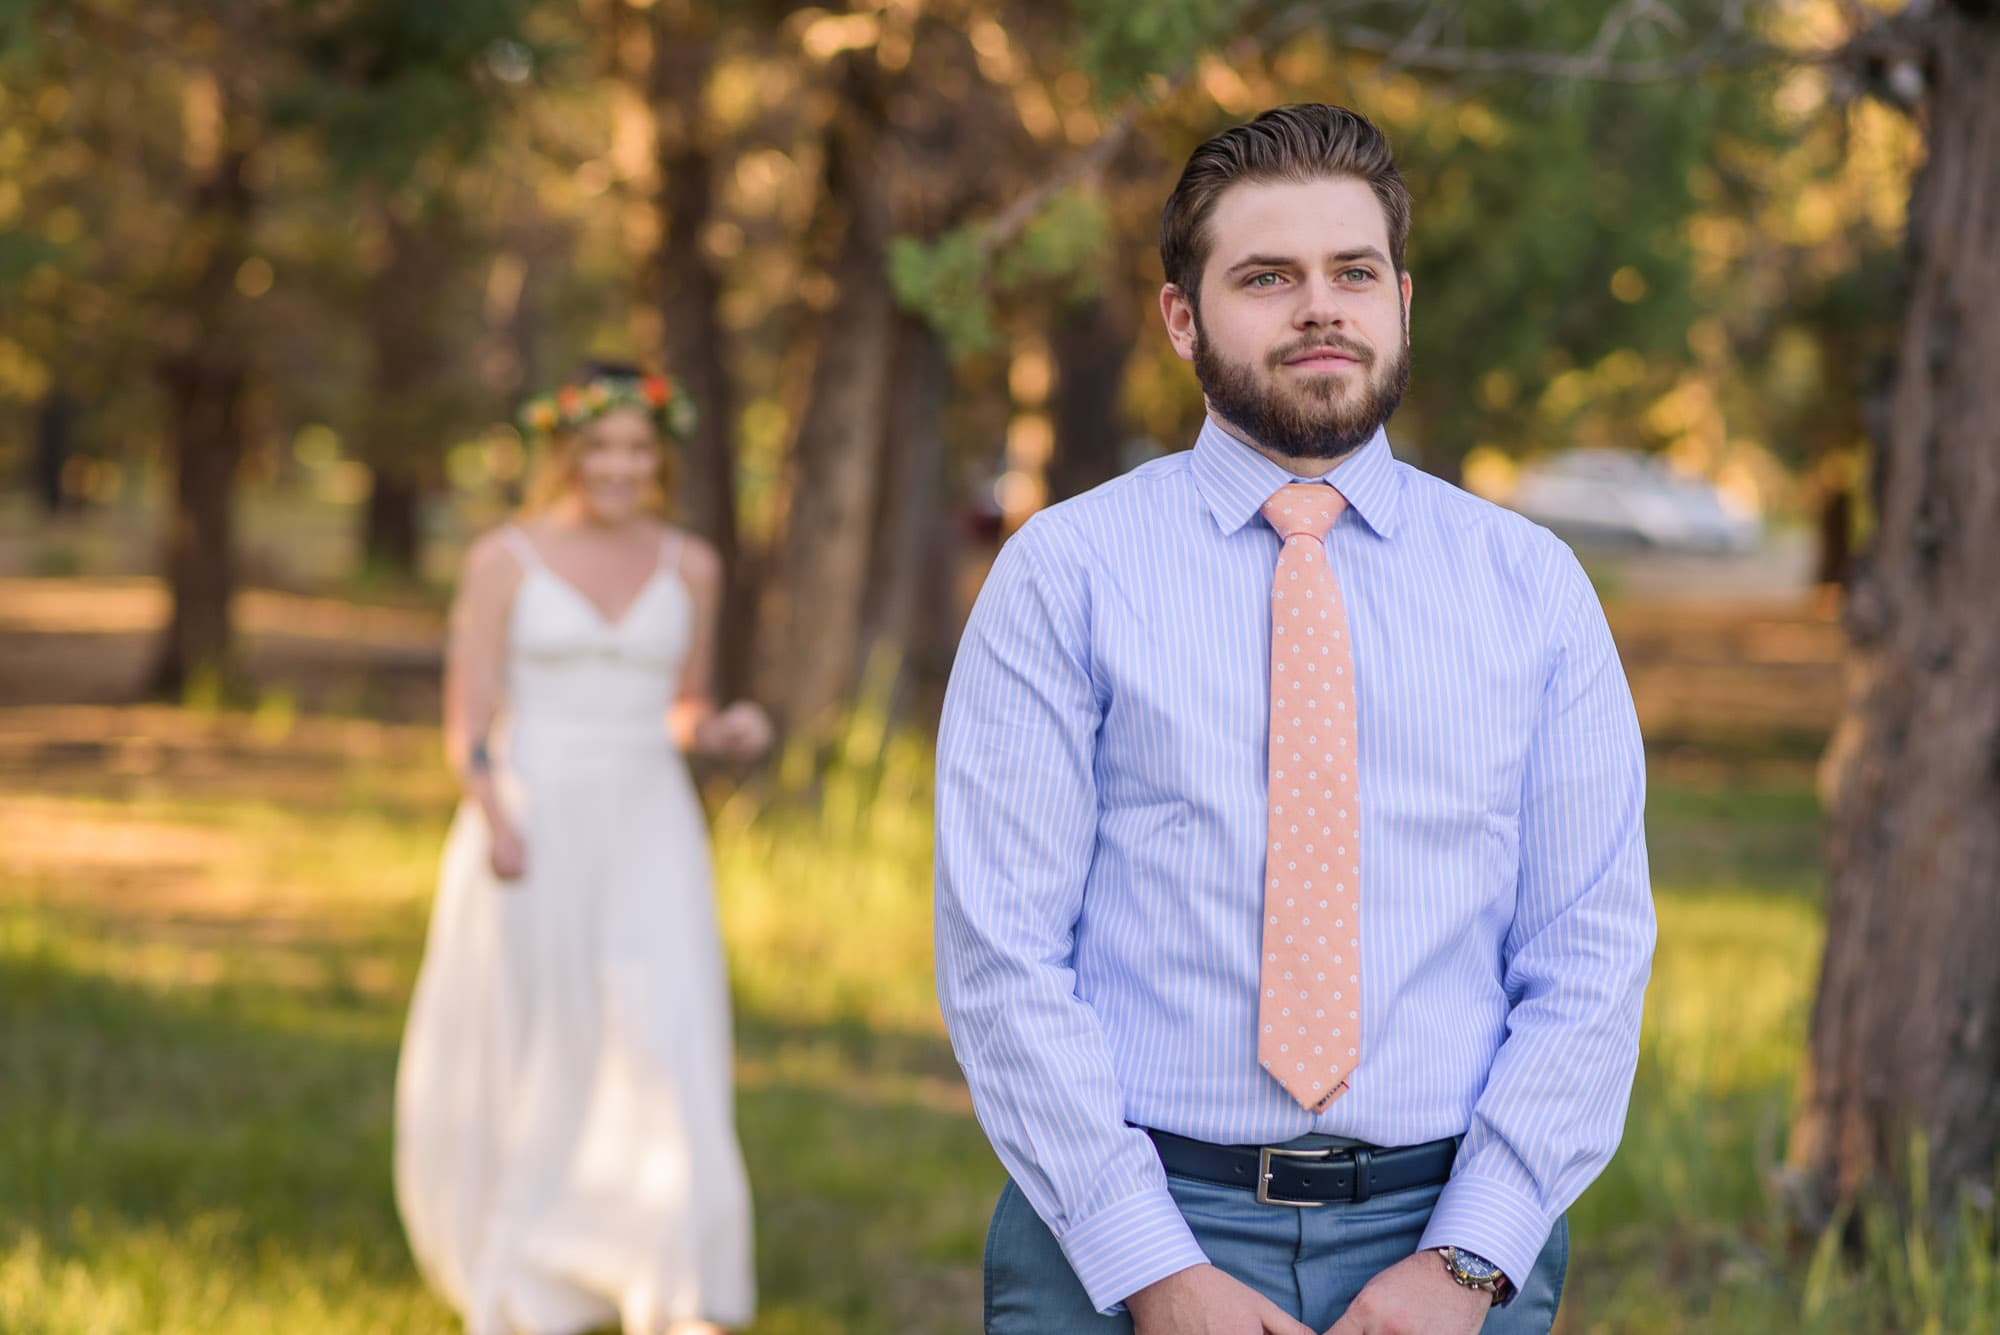 003_Alan_and_Heidi_Kensey_Josh_Big_Bear_Elopement